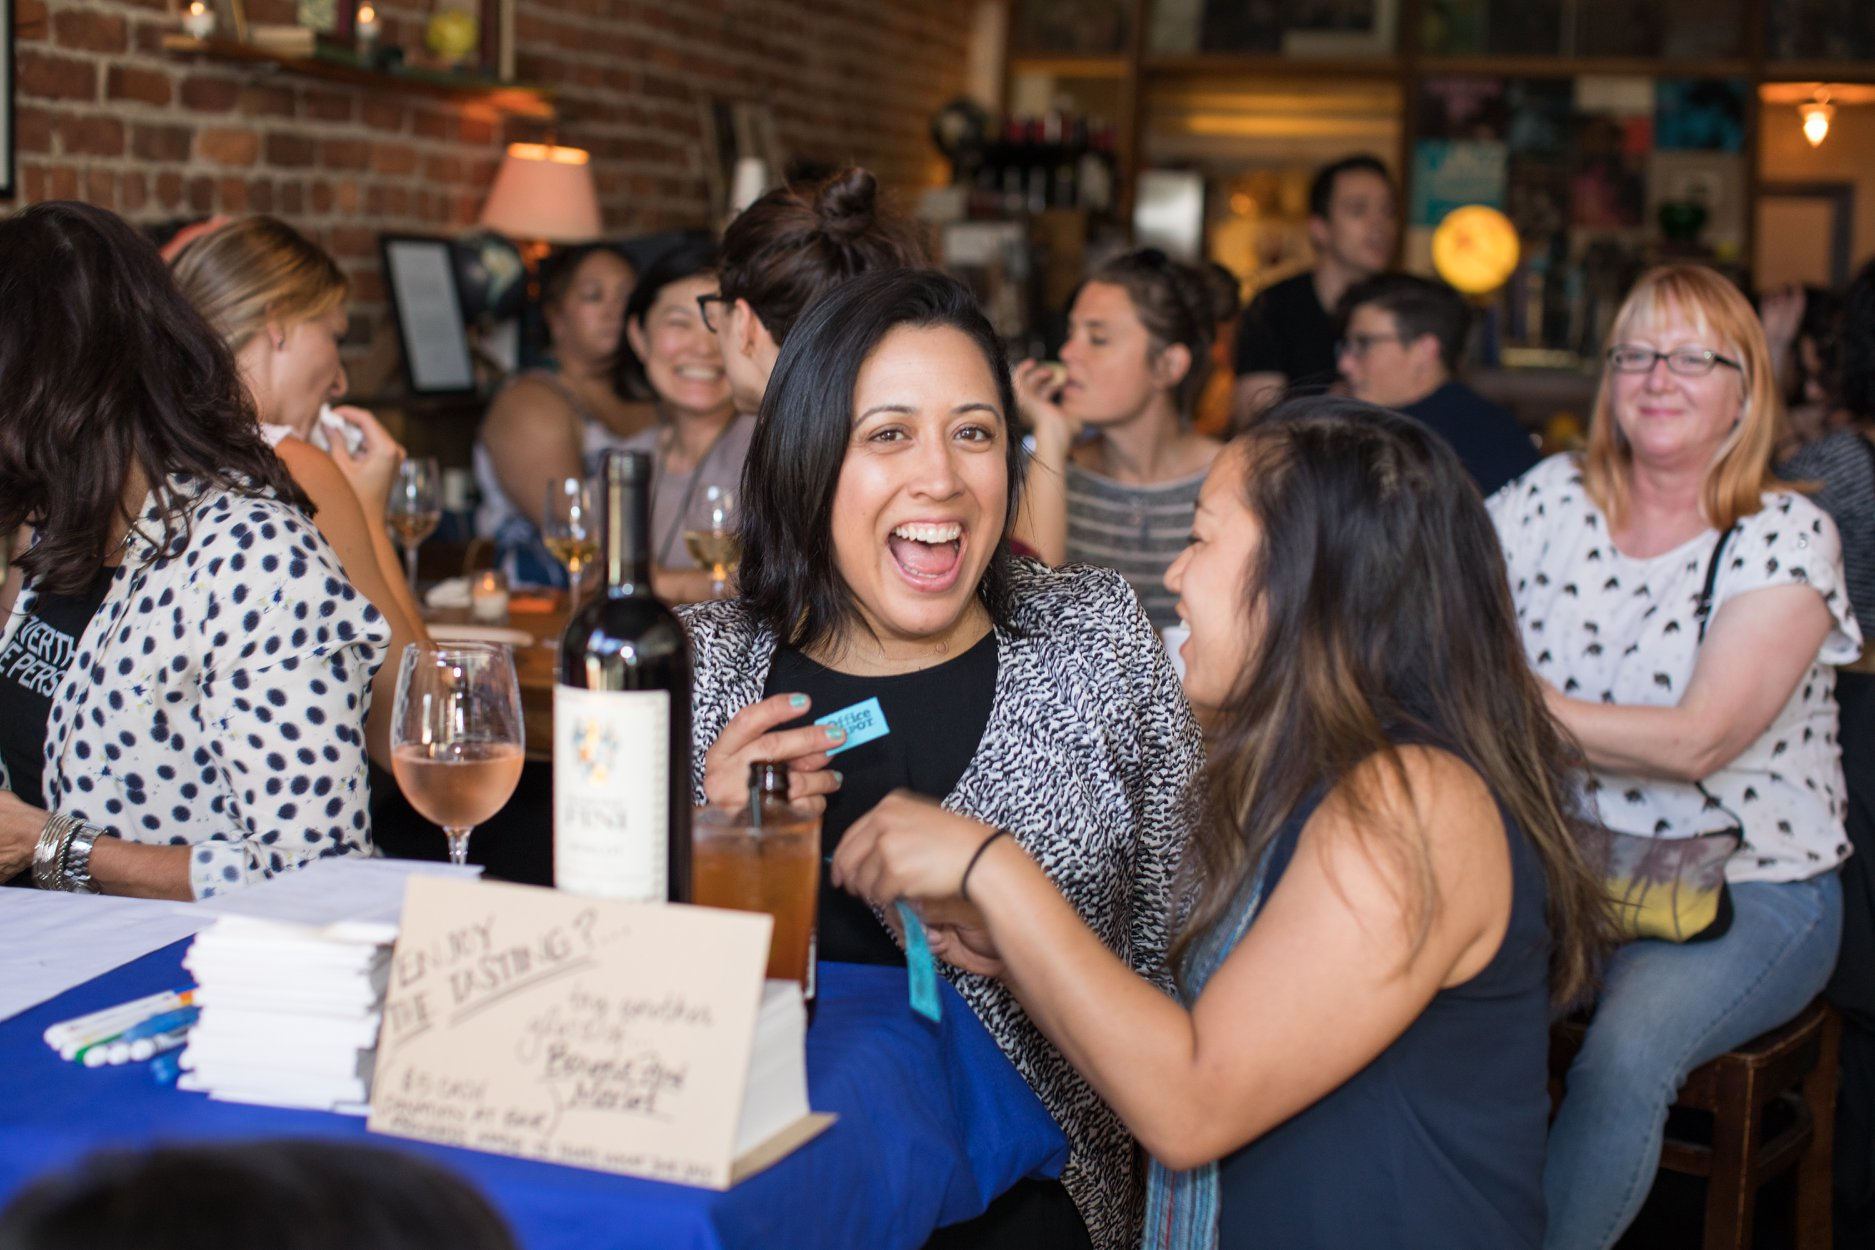 📷 © Morgan Shidler |  July TWSS™: Comedy Night + Barone Fini Wine Tasting Challenge